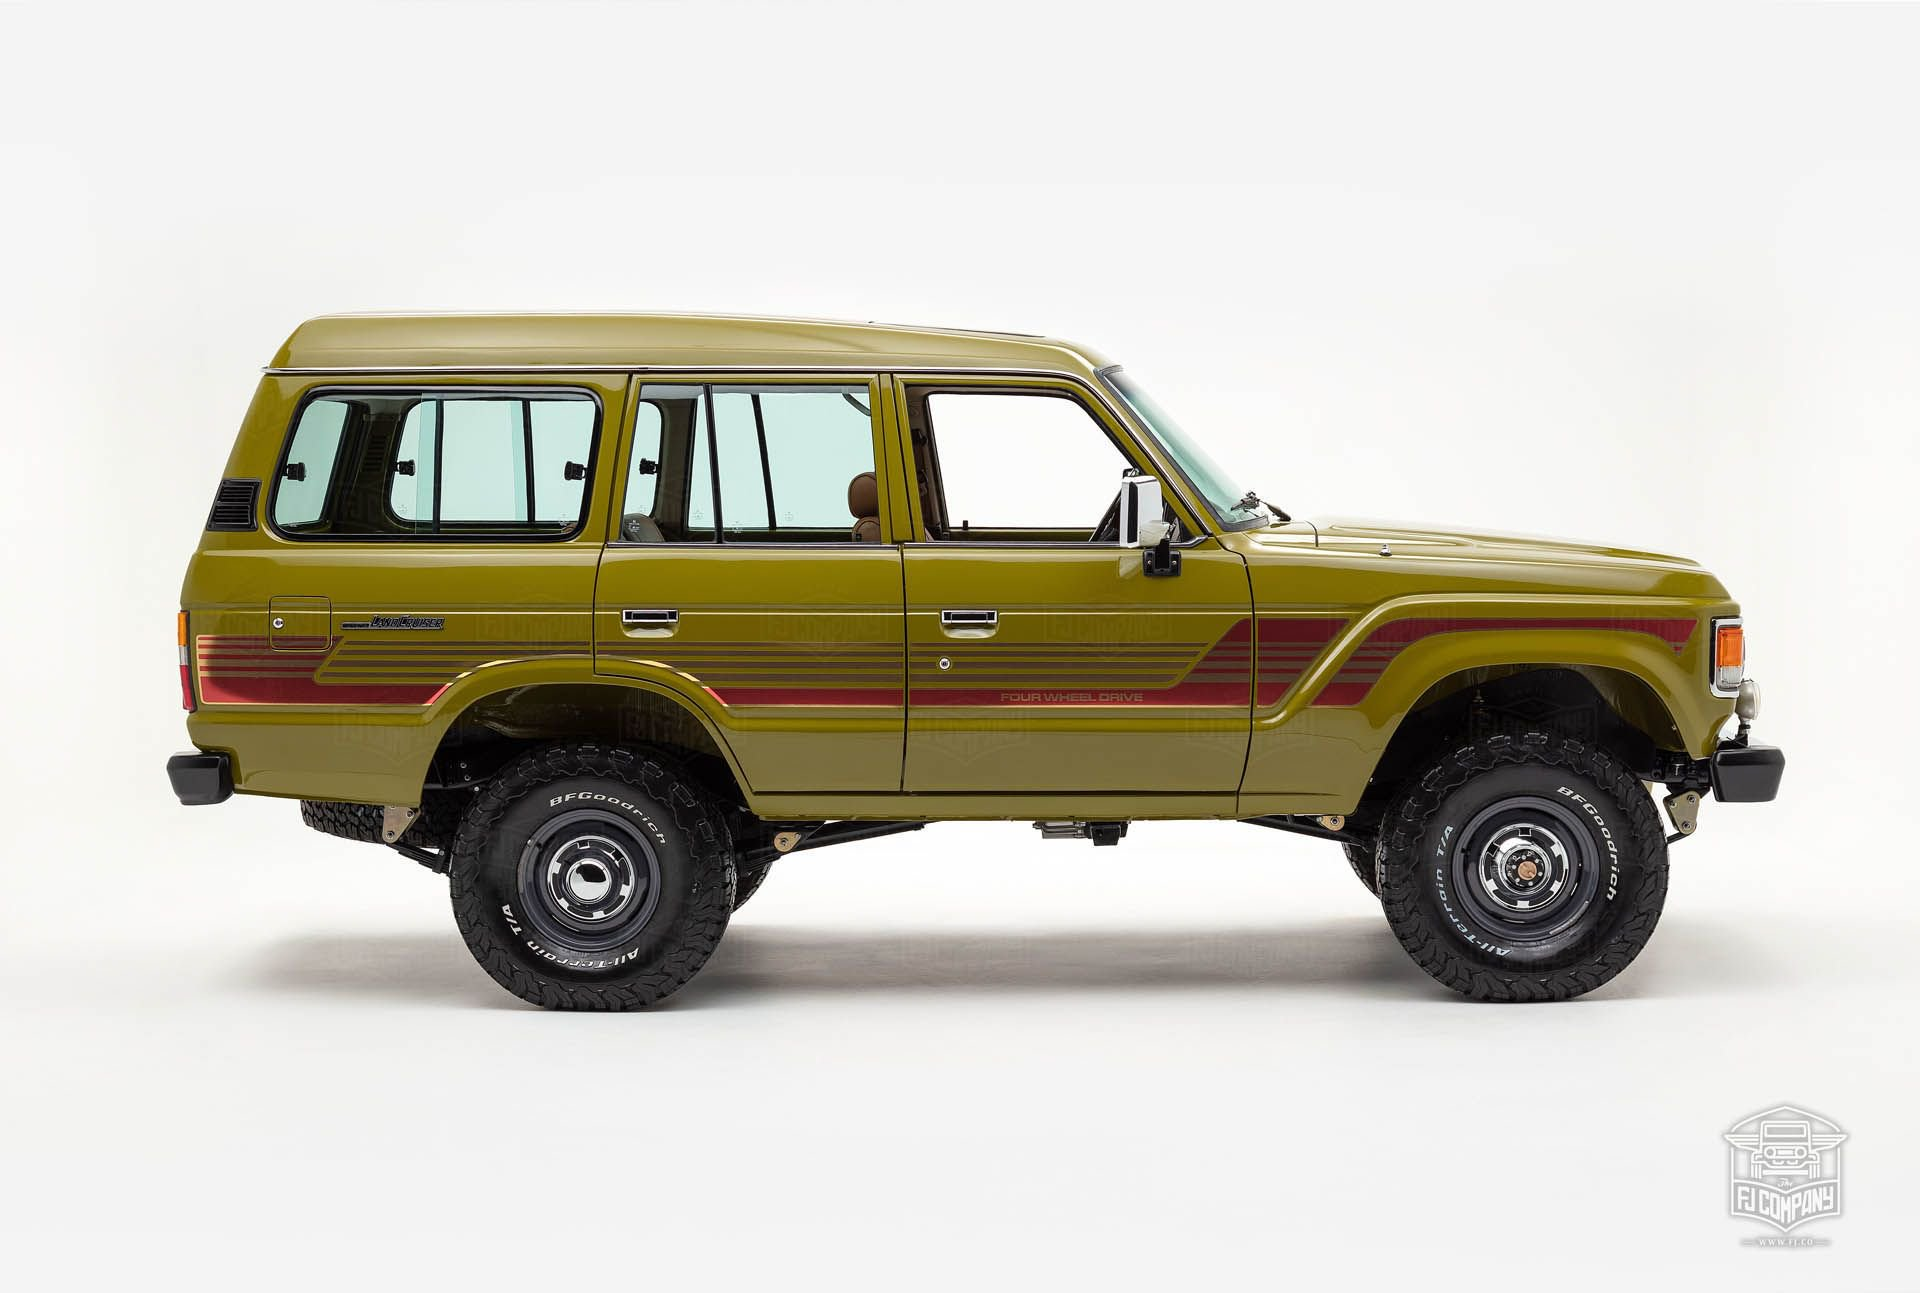 Toyota-Land-Cruiser-FJ62-restomod-2